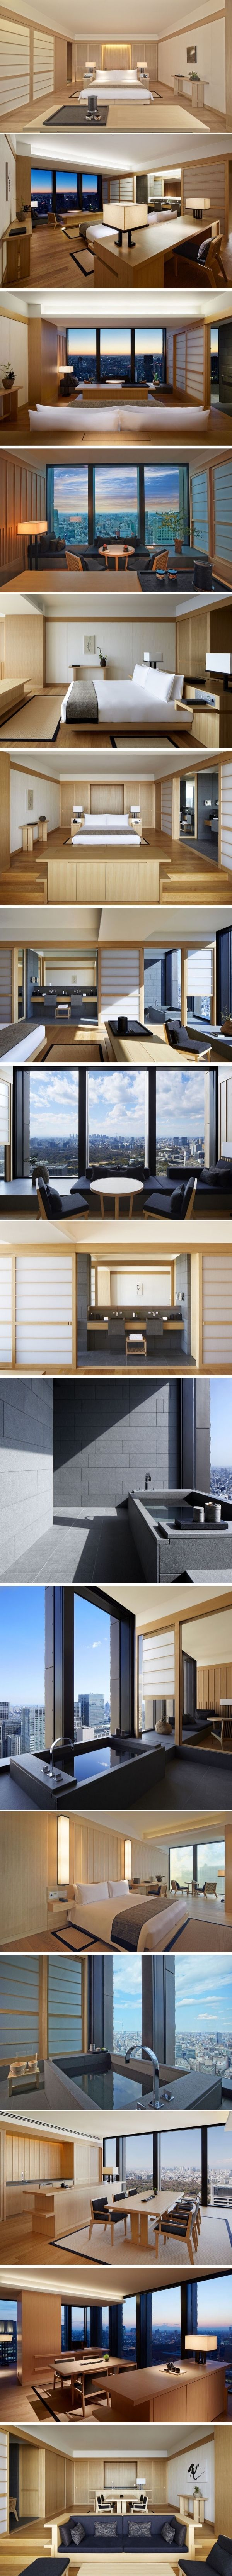 best 25 japanese modern interior ideas on pinterest japanese how to mix contemporary interior design with elements of japanese culture contemporist